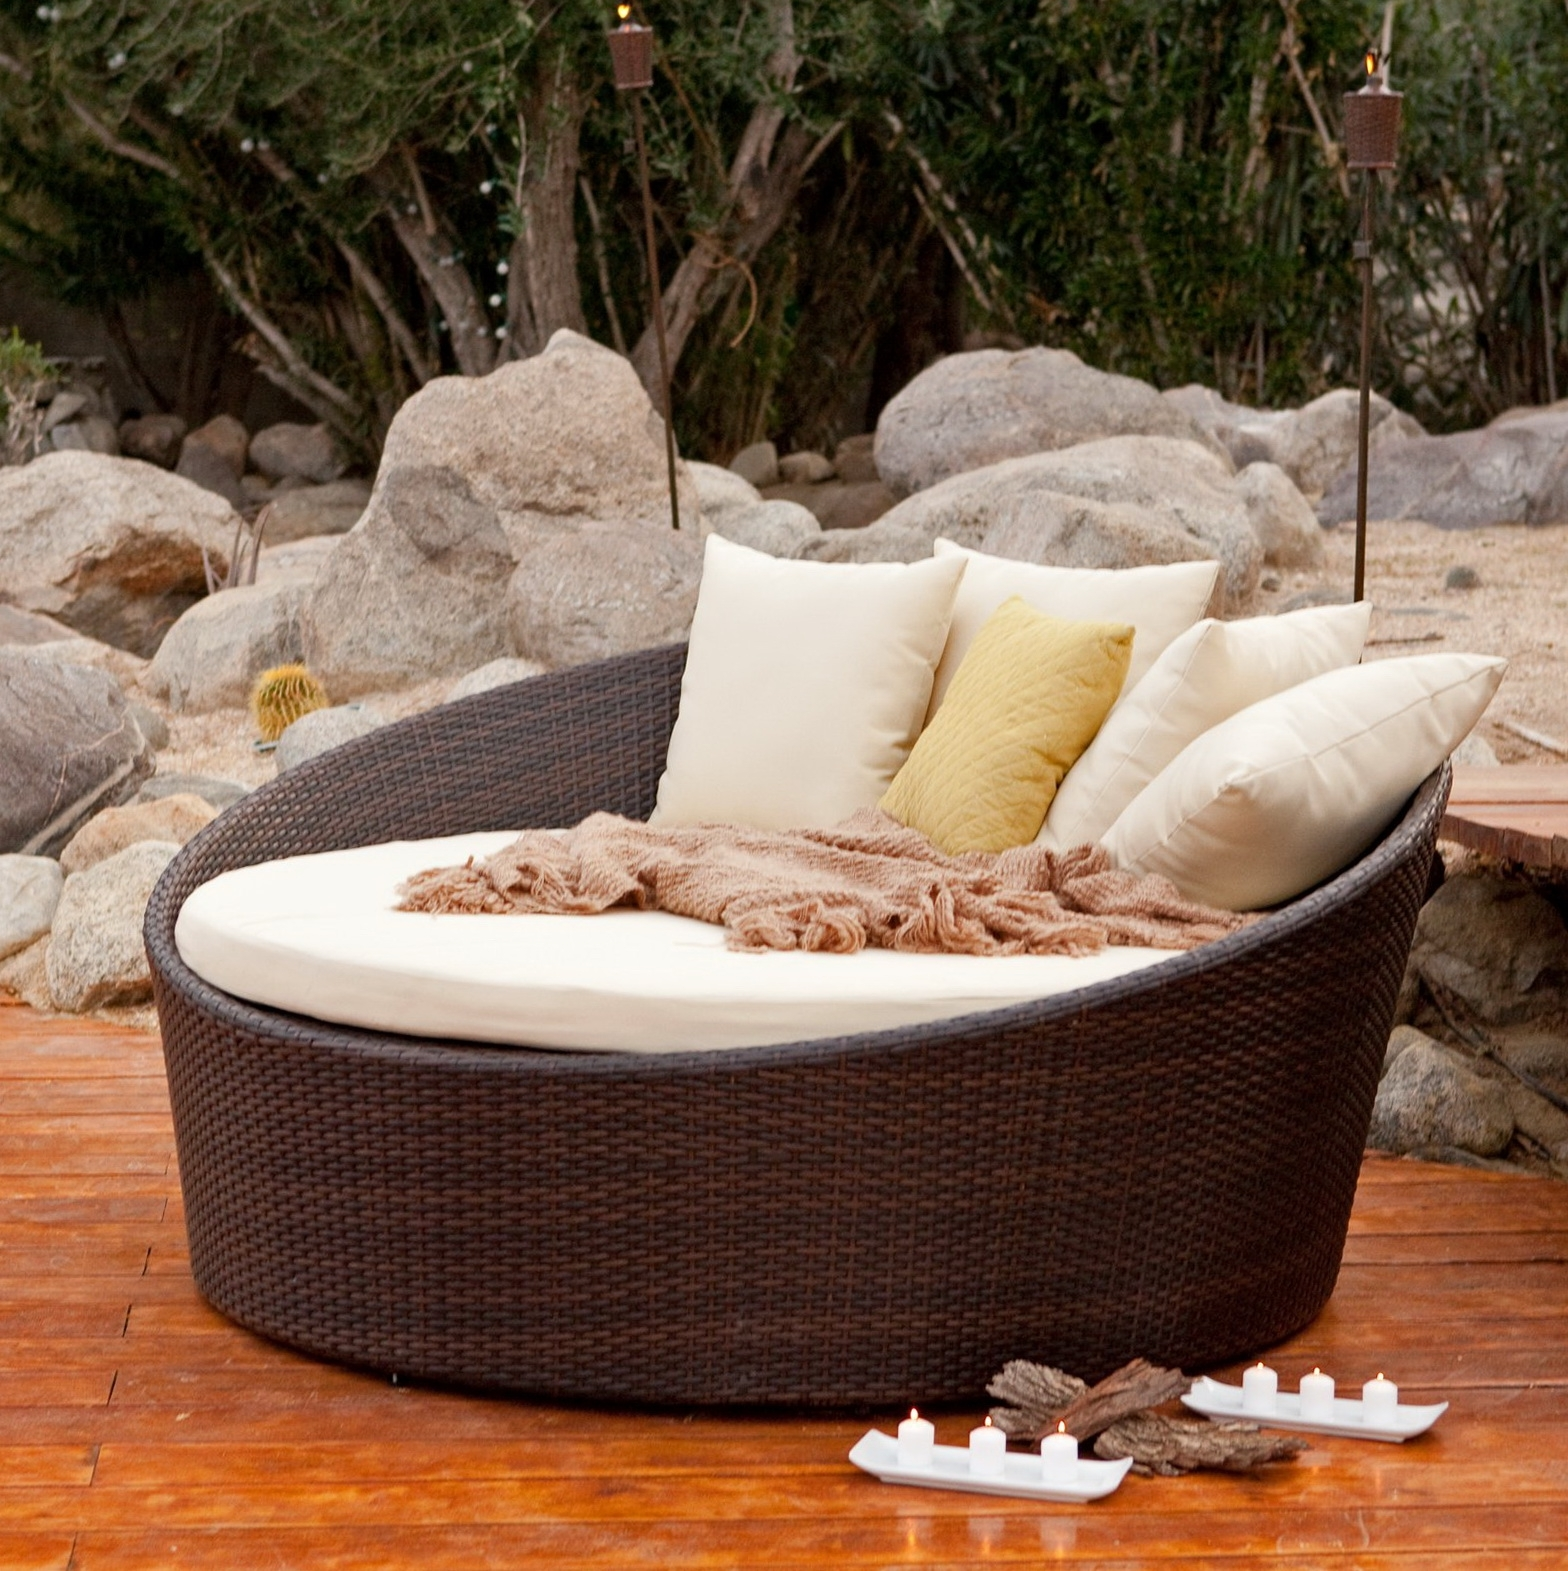 Round Chaises With Recent Outstanding Round Chaise Lounge Designs – Decofurnish (View 12 of 15)